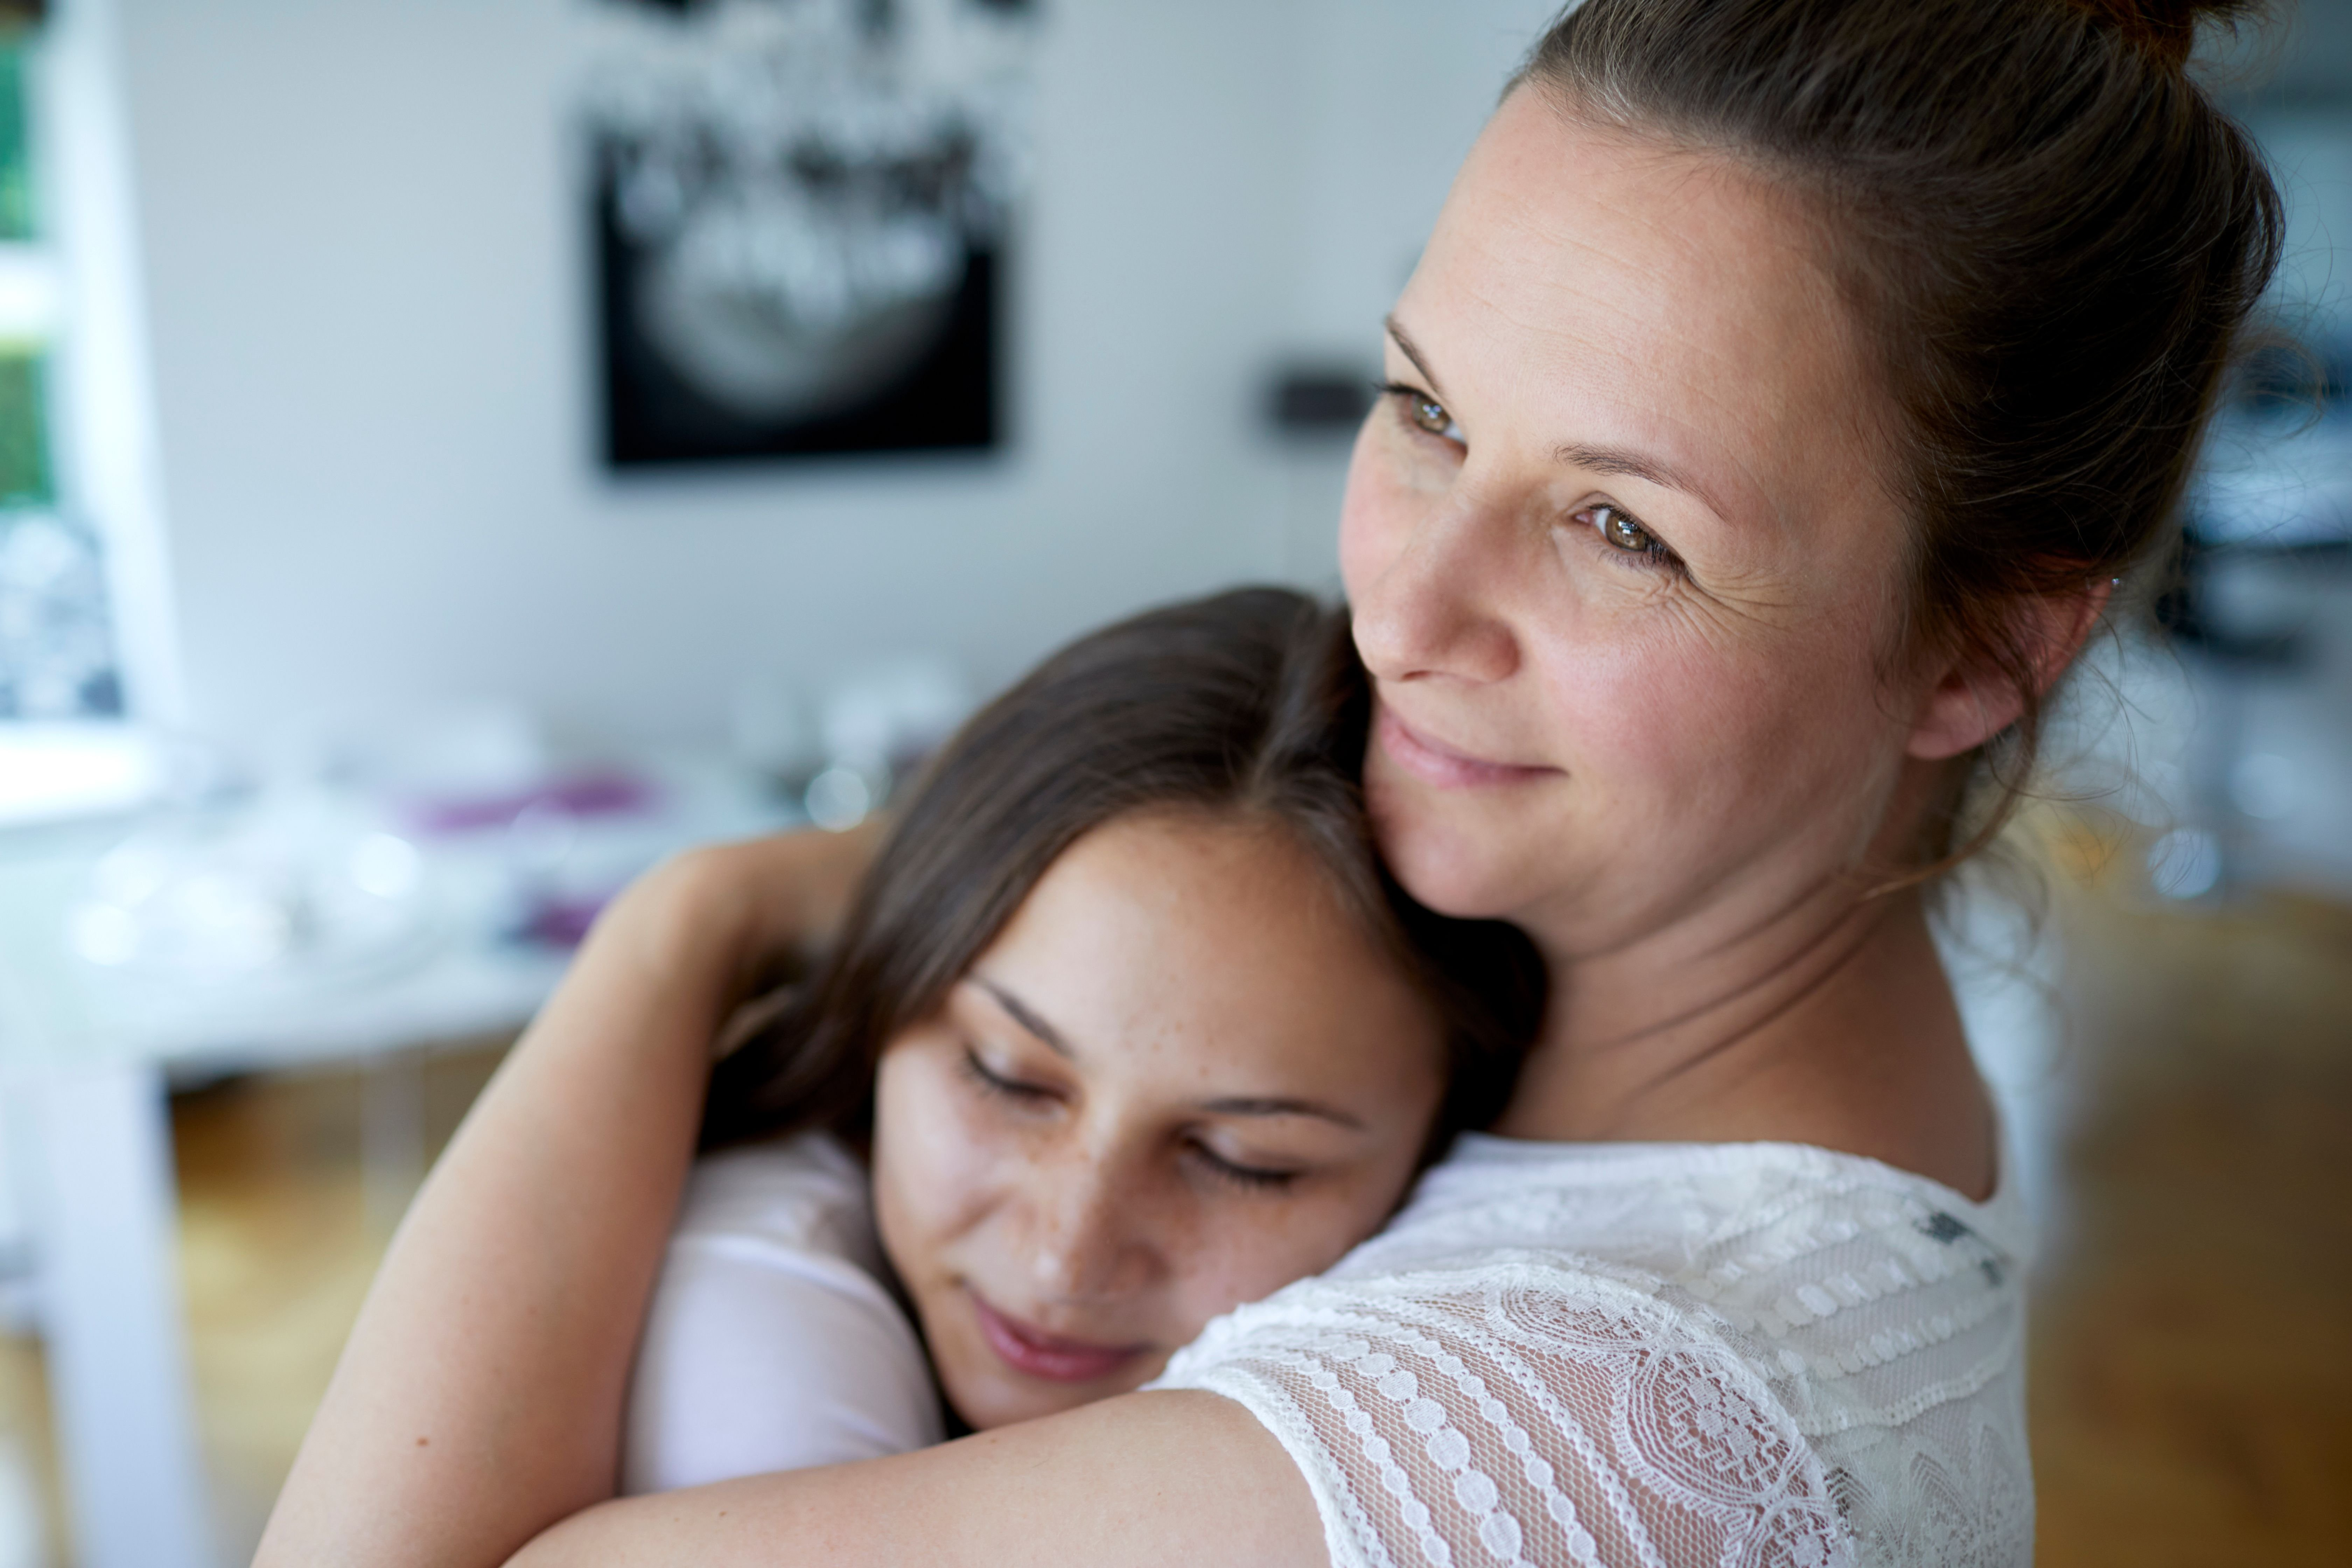 A mother and her teen daughter hugging at home.   Source: Getty Images